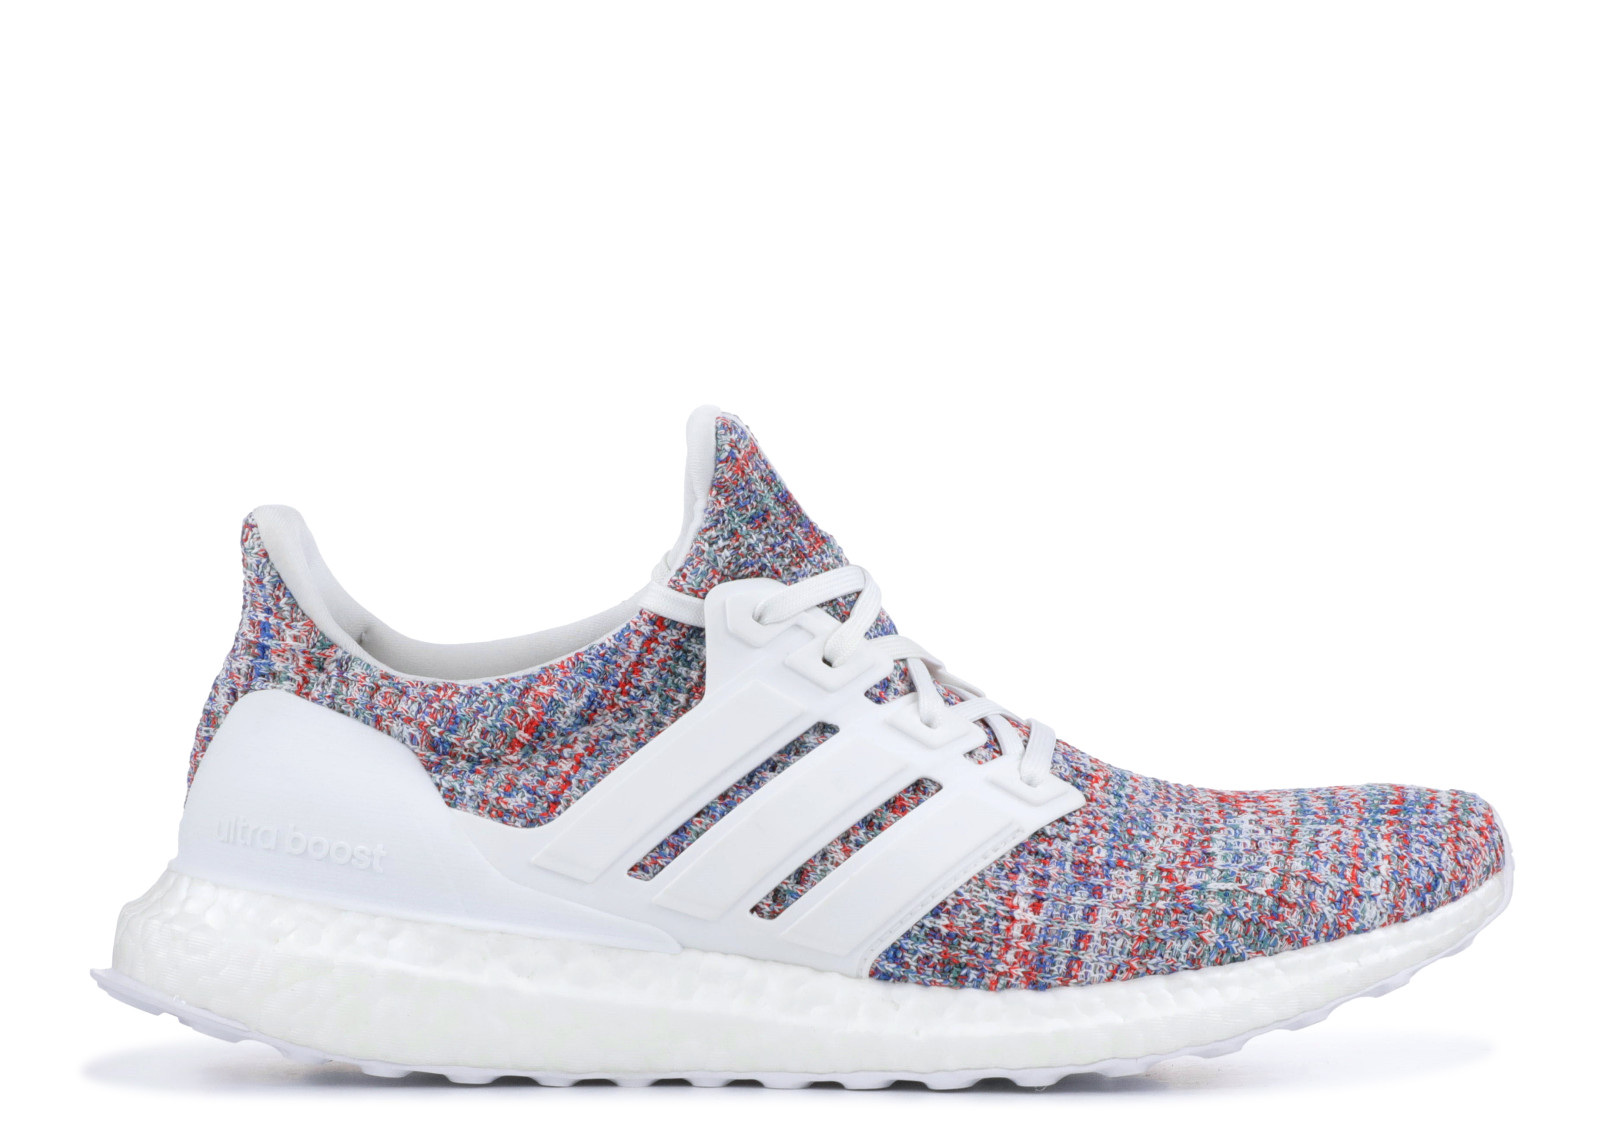 0e026123b14d3 adidas Ultra Boost 4.0 White Multi-Color 2 - 0